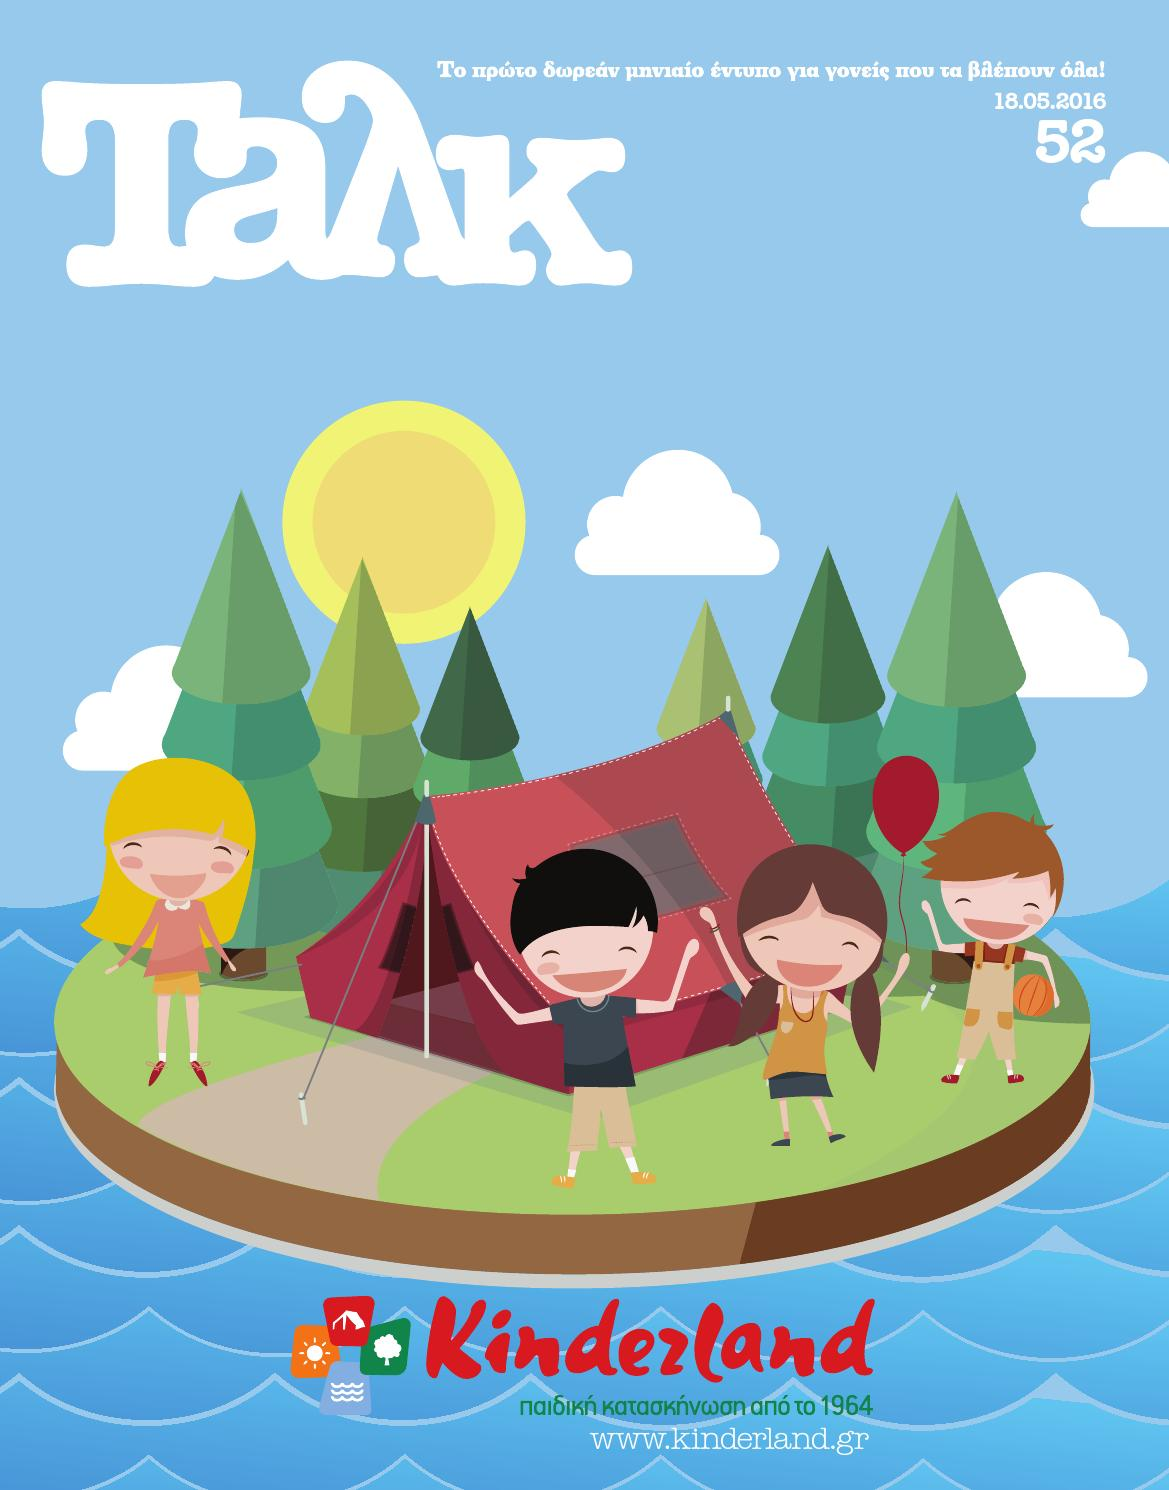 343d83633e8 Talk 52 by talcmag - issuu